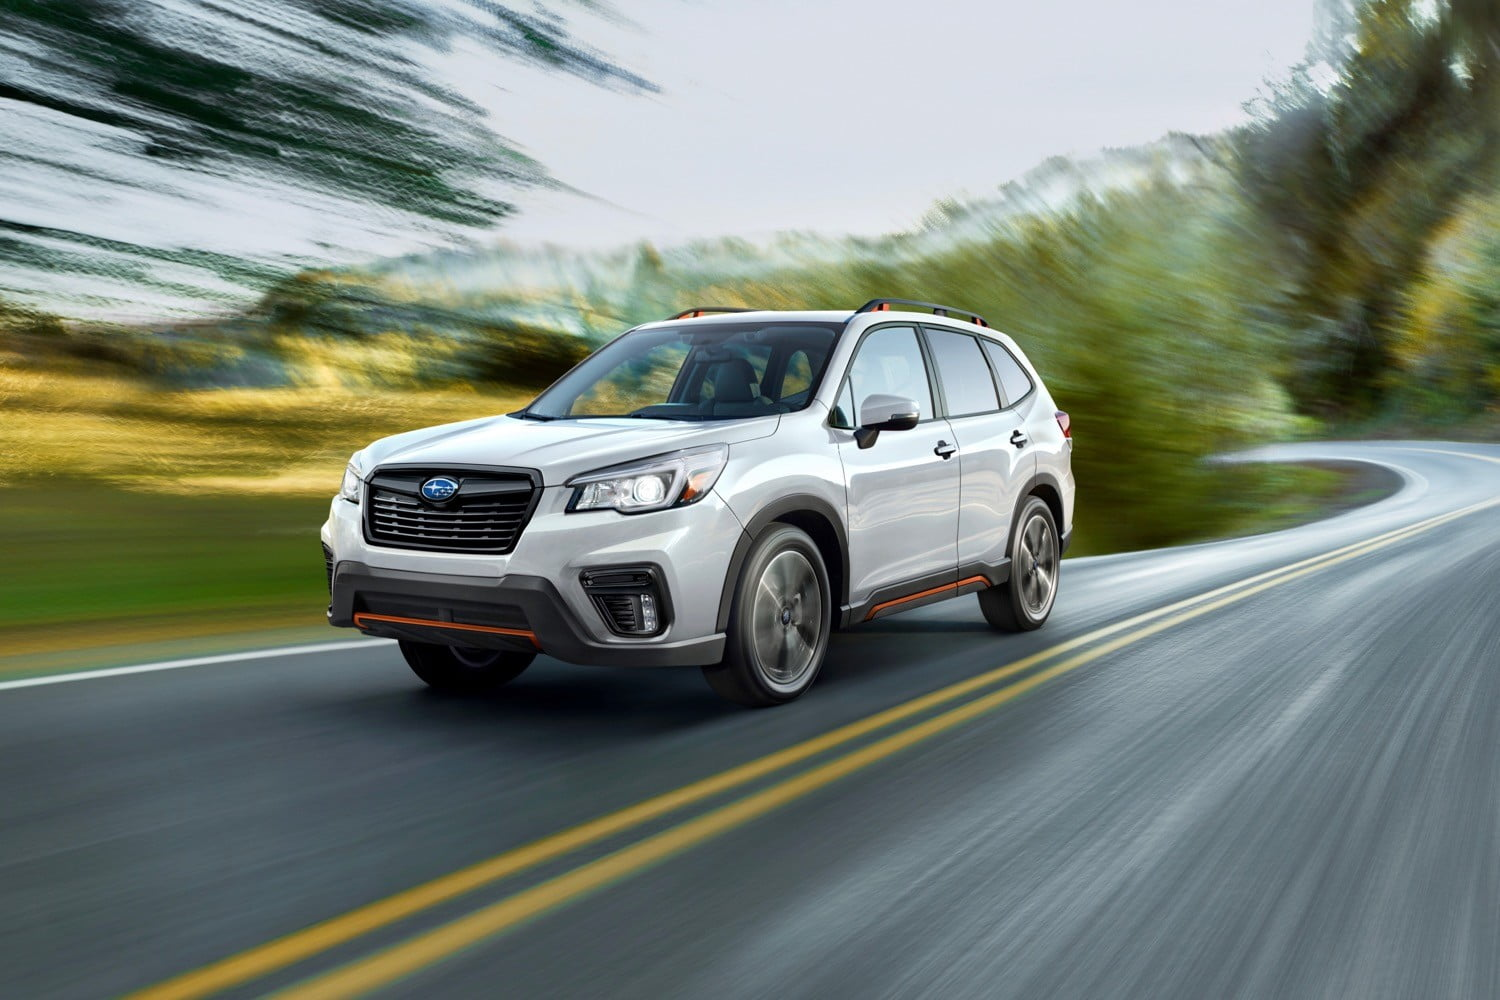 2019 Subaru Forester Crossover Priced Starting At 25 270 Digital